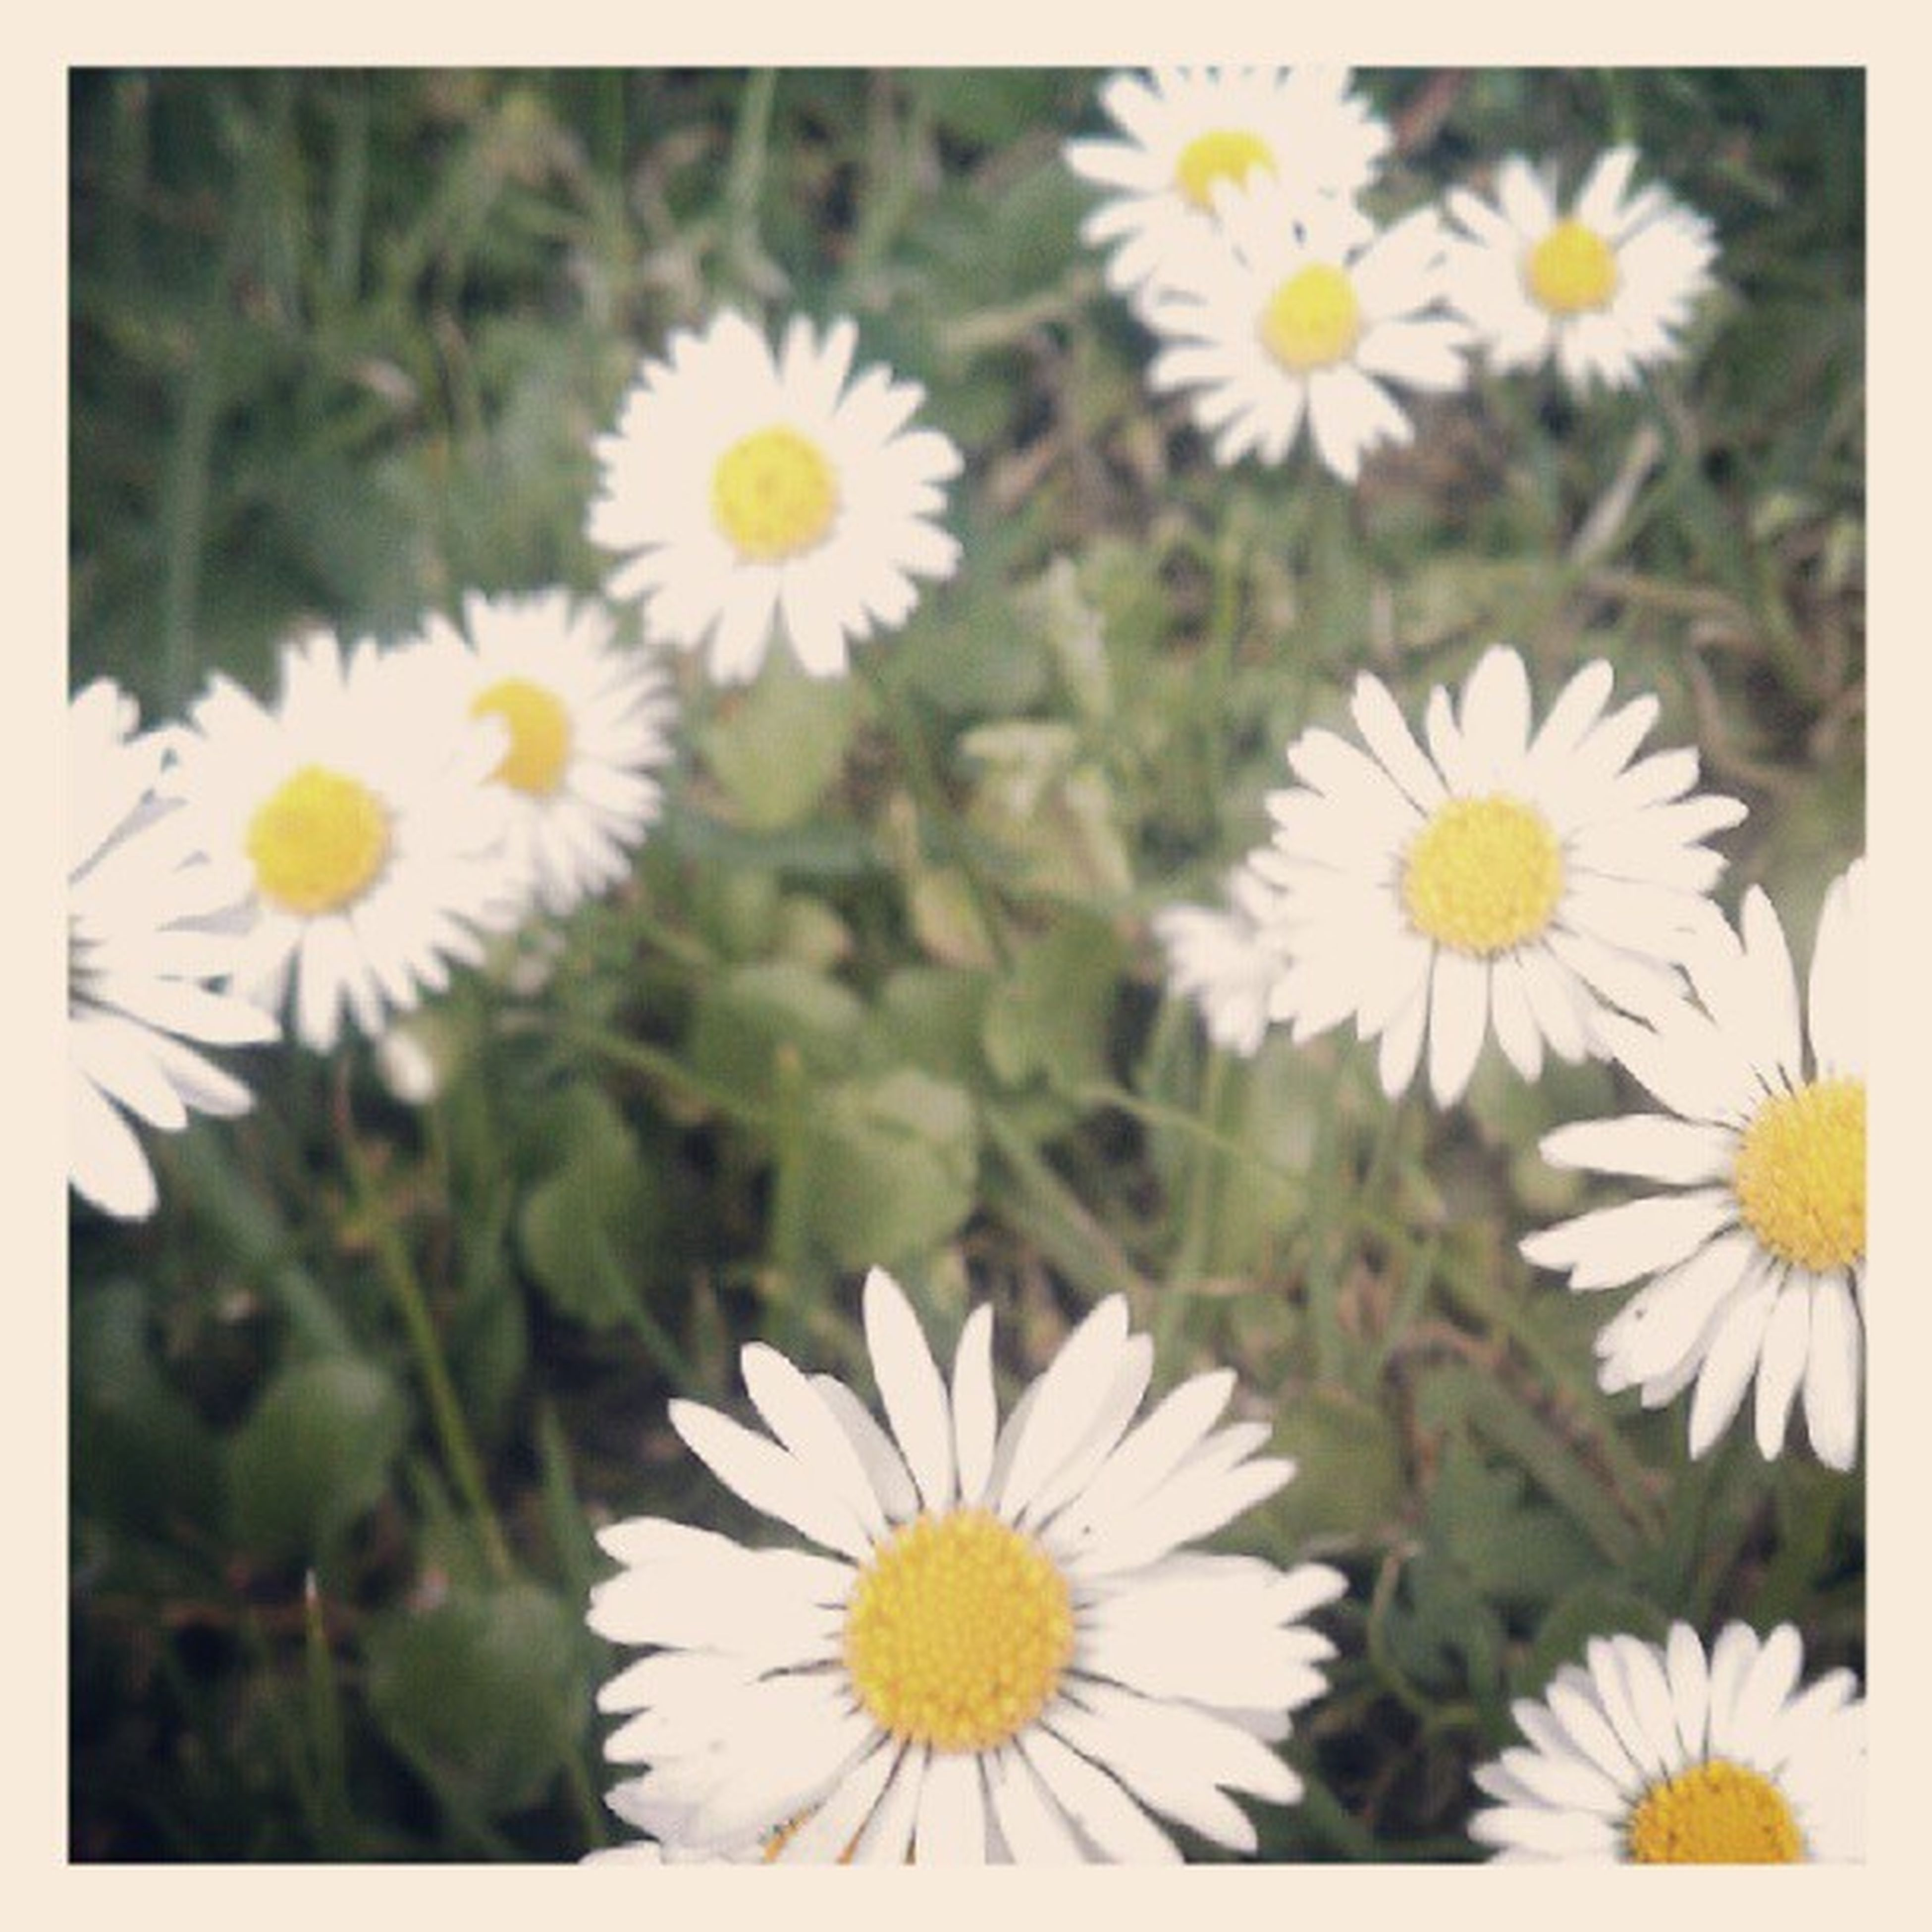 flower, freshness, petal, fragility, white color, daisy, flower head, growth, transfer print, beauty in nature, blooming, pollen, nature, plant, focus on foreground, close-up, field, yellow, auto post production filter, high angle view